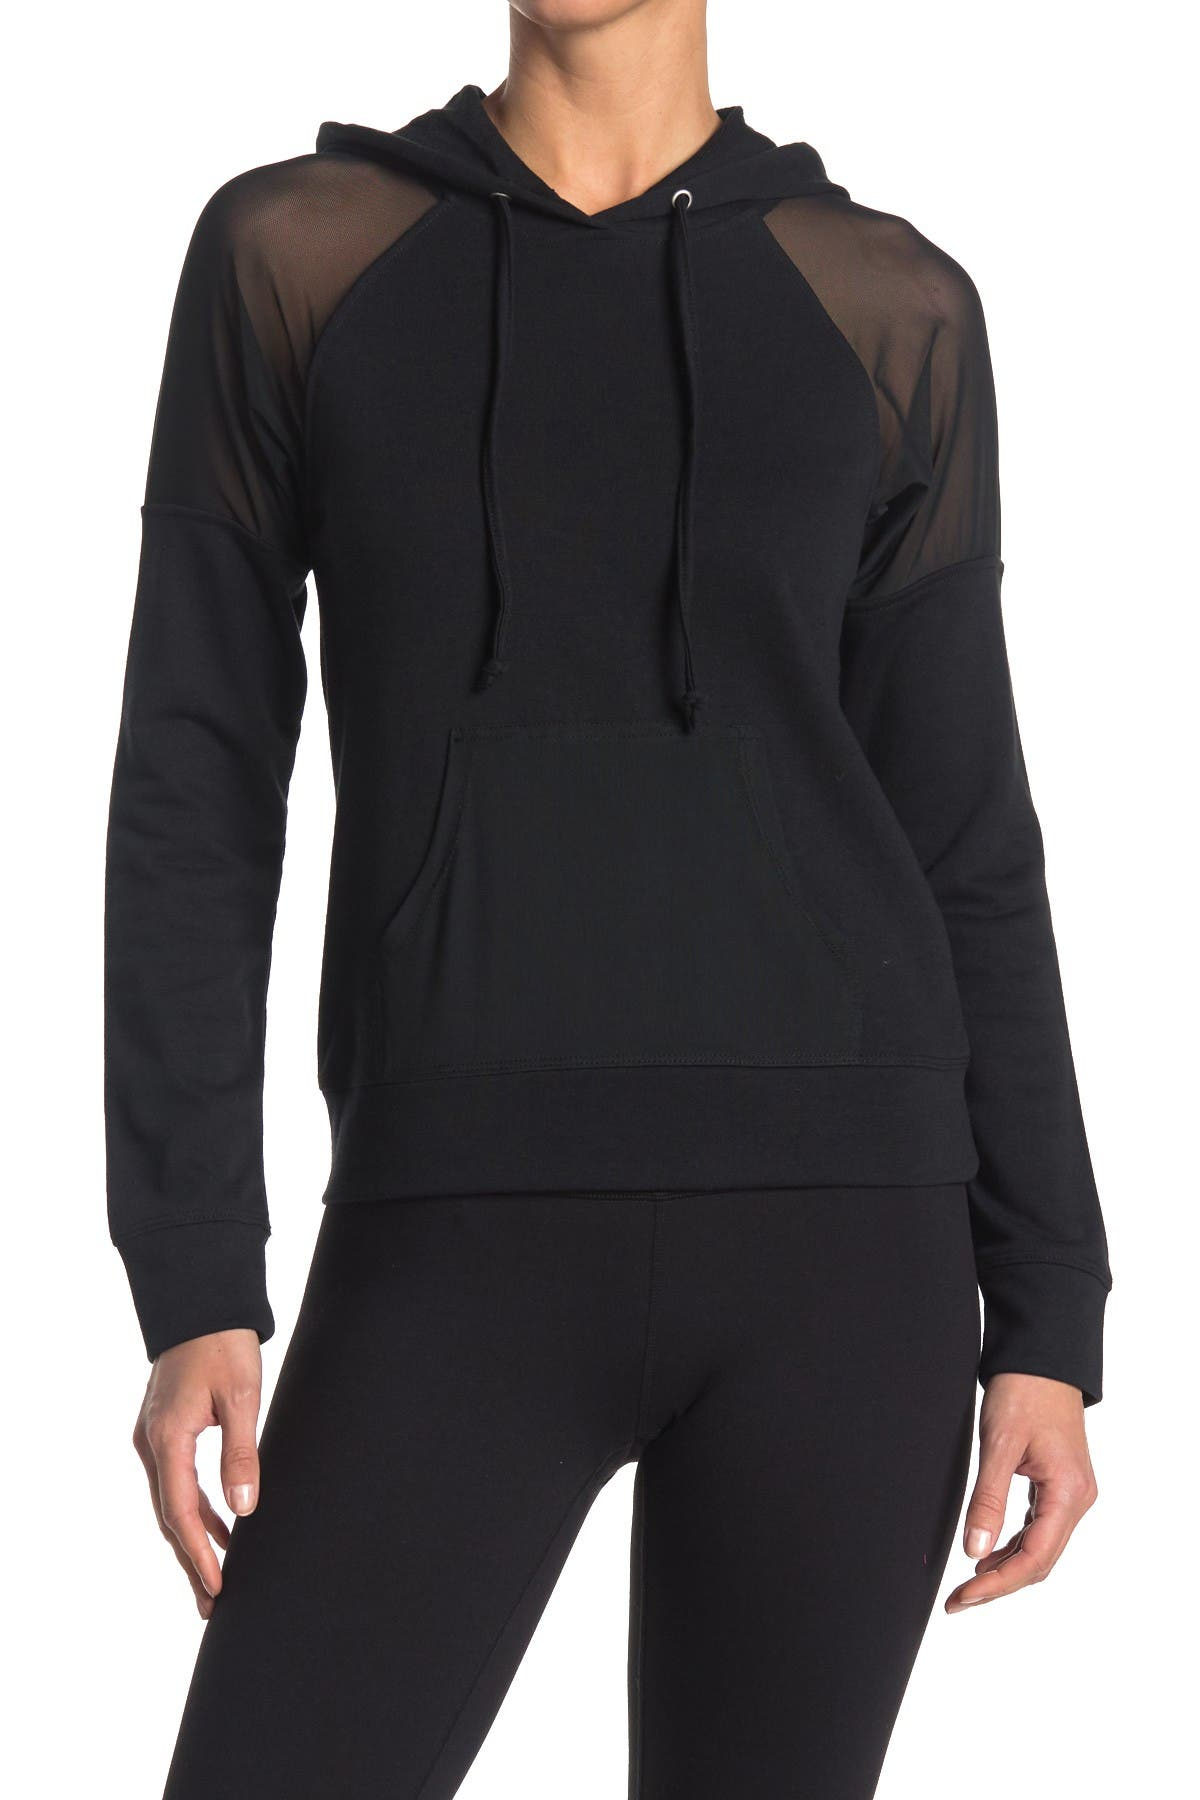 Image of MATERIAL GIRL Mesh Panel Pullover Hoodie